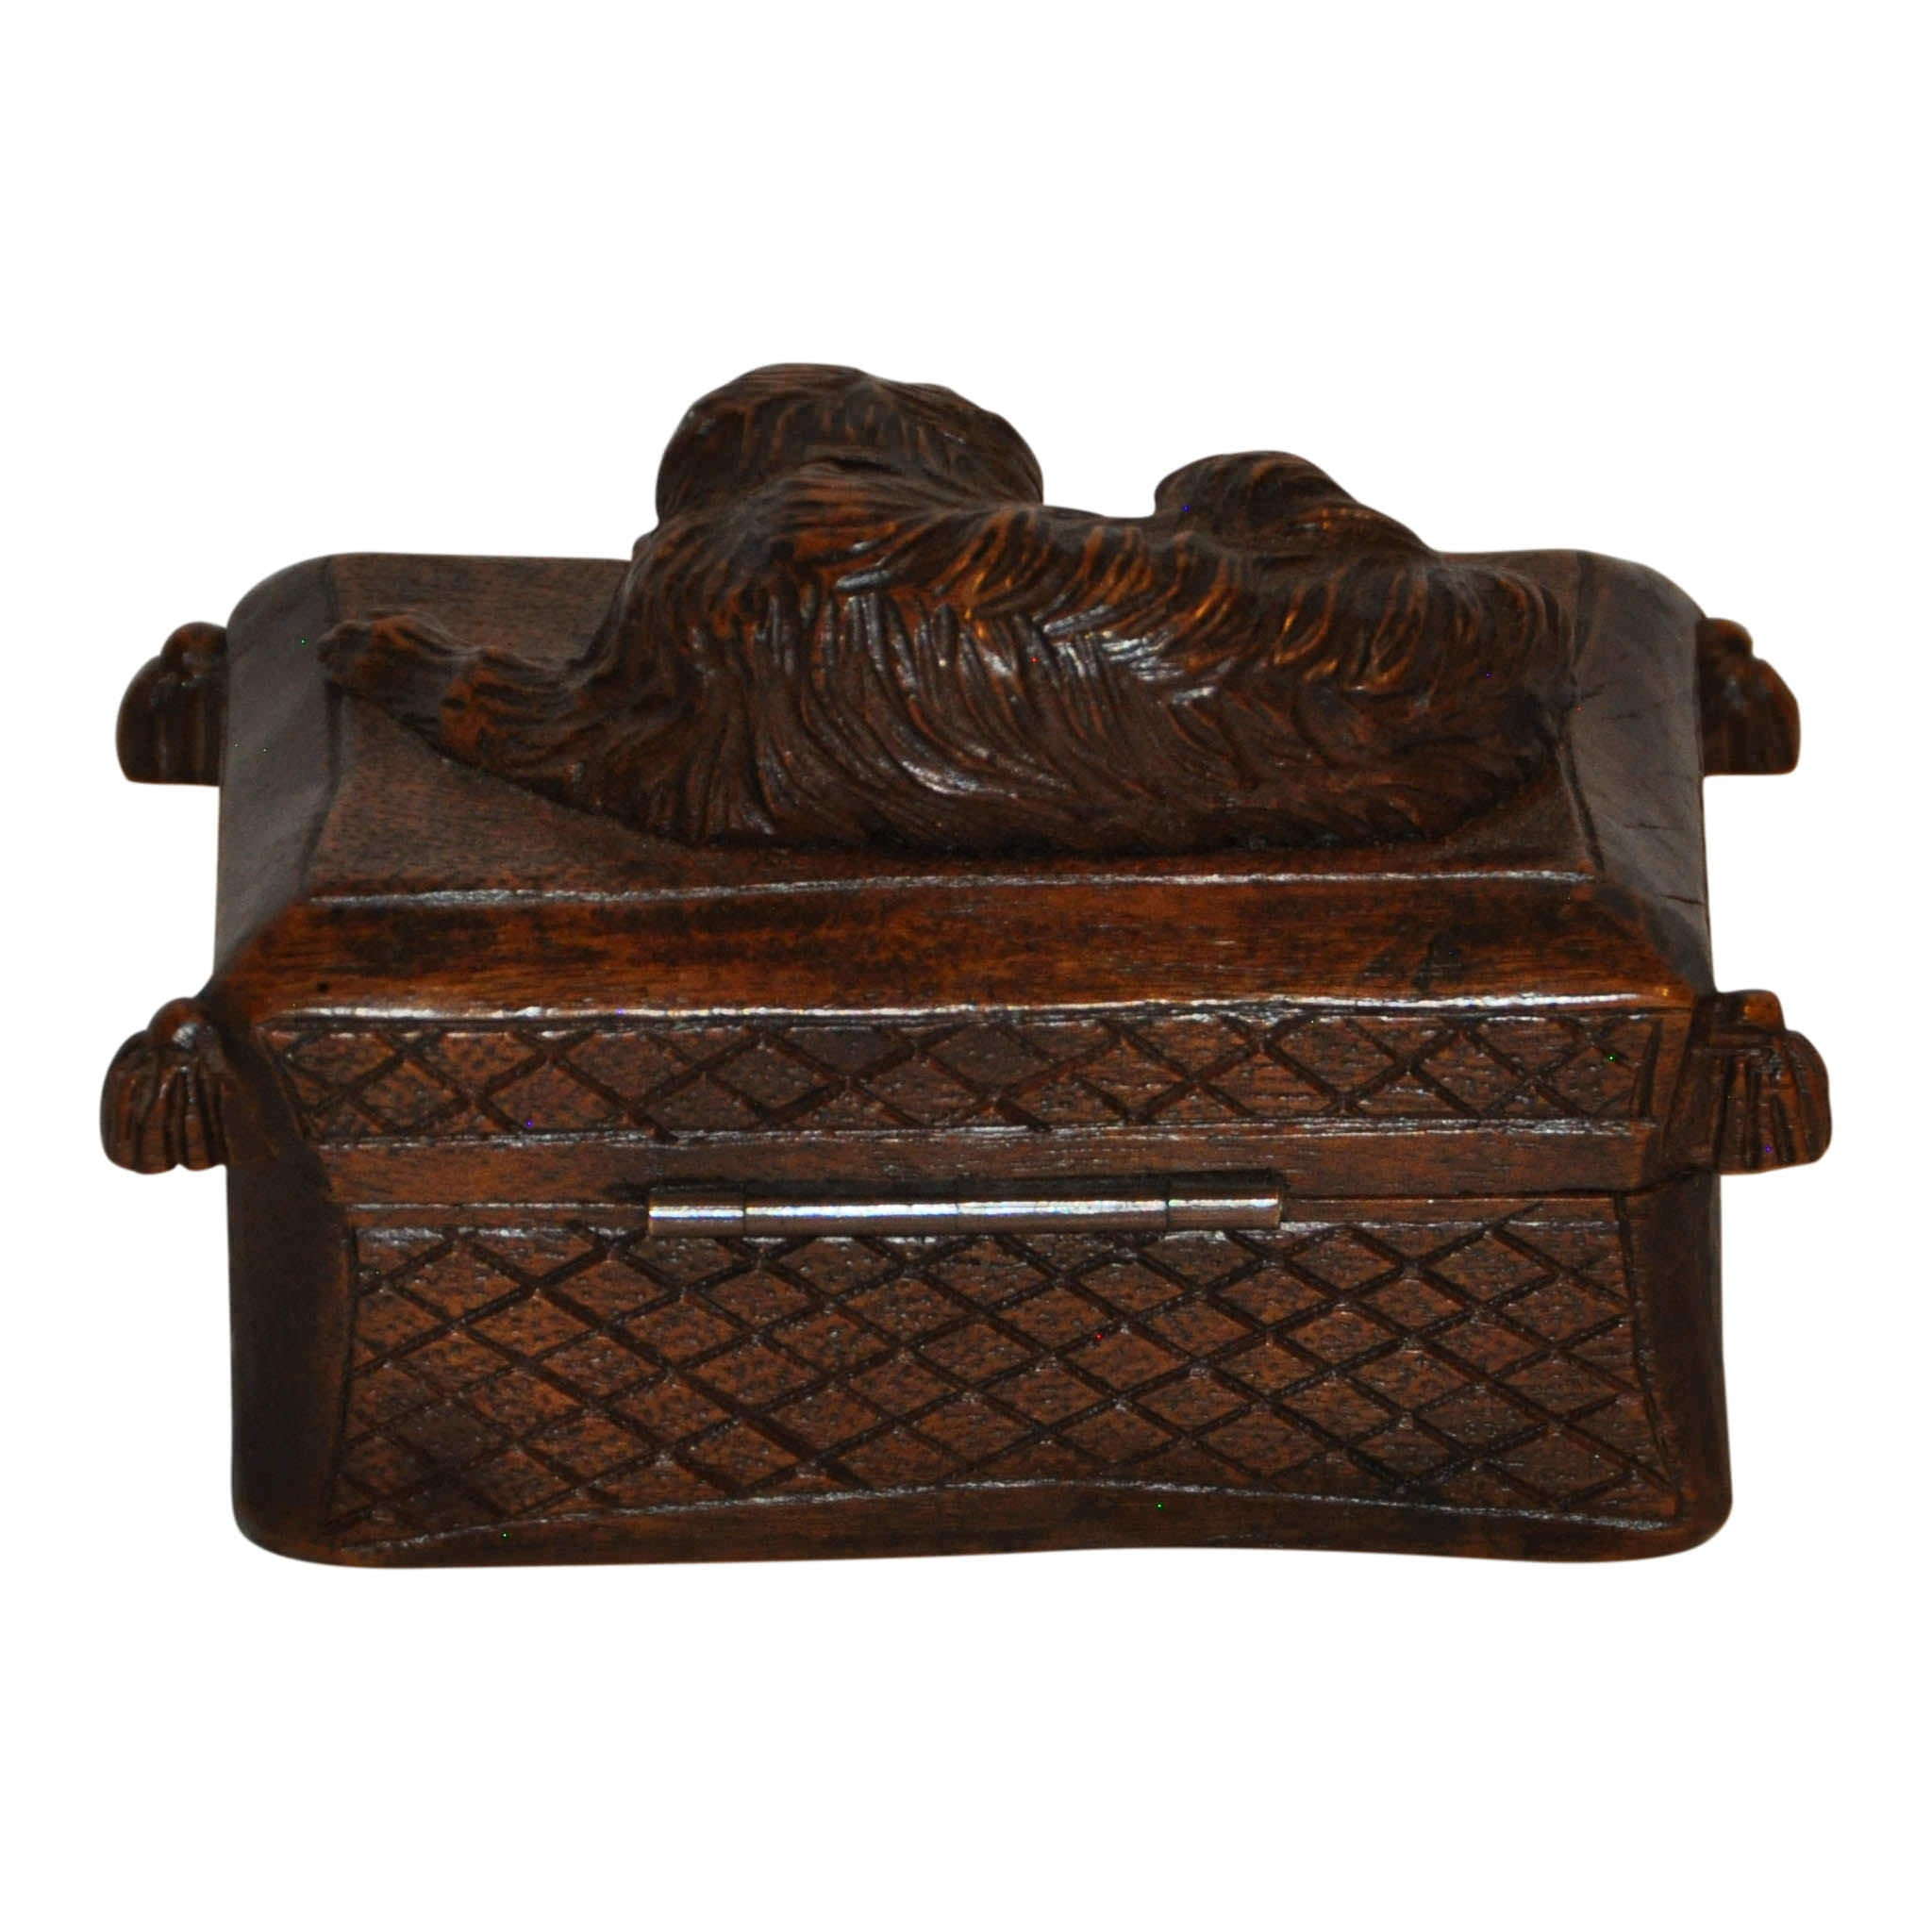 Carved Box with Dog